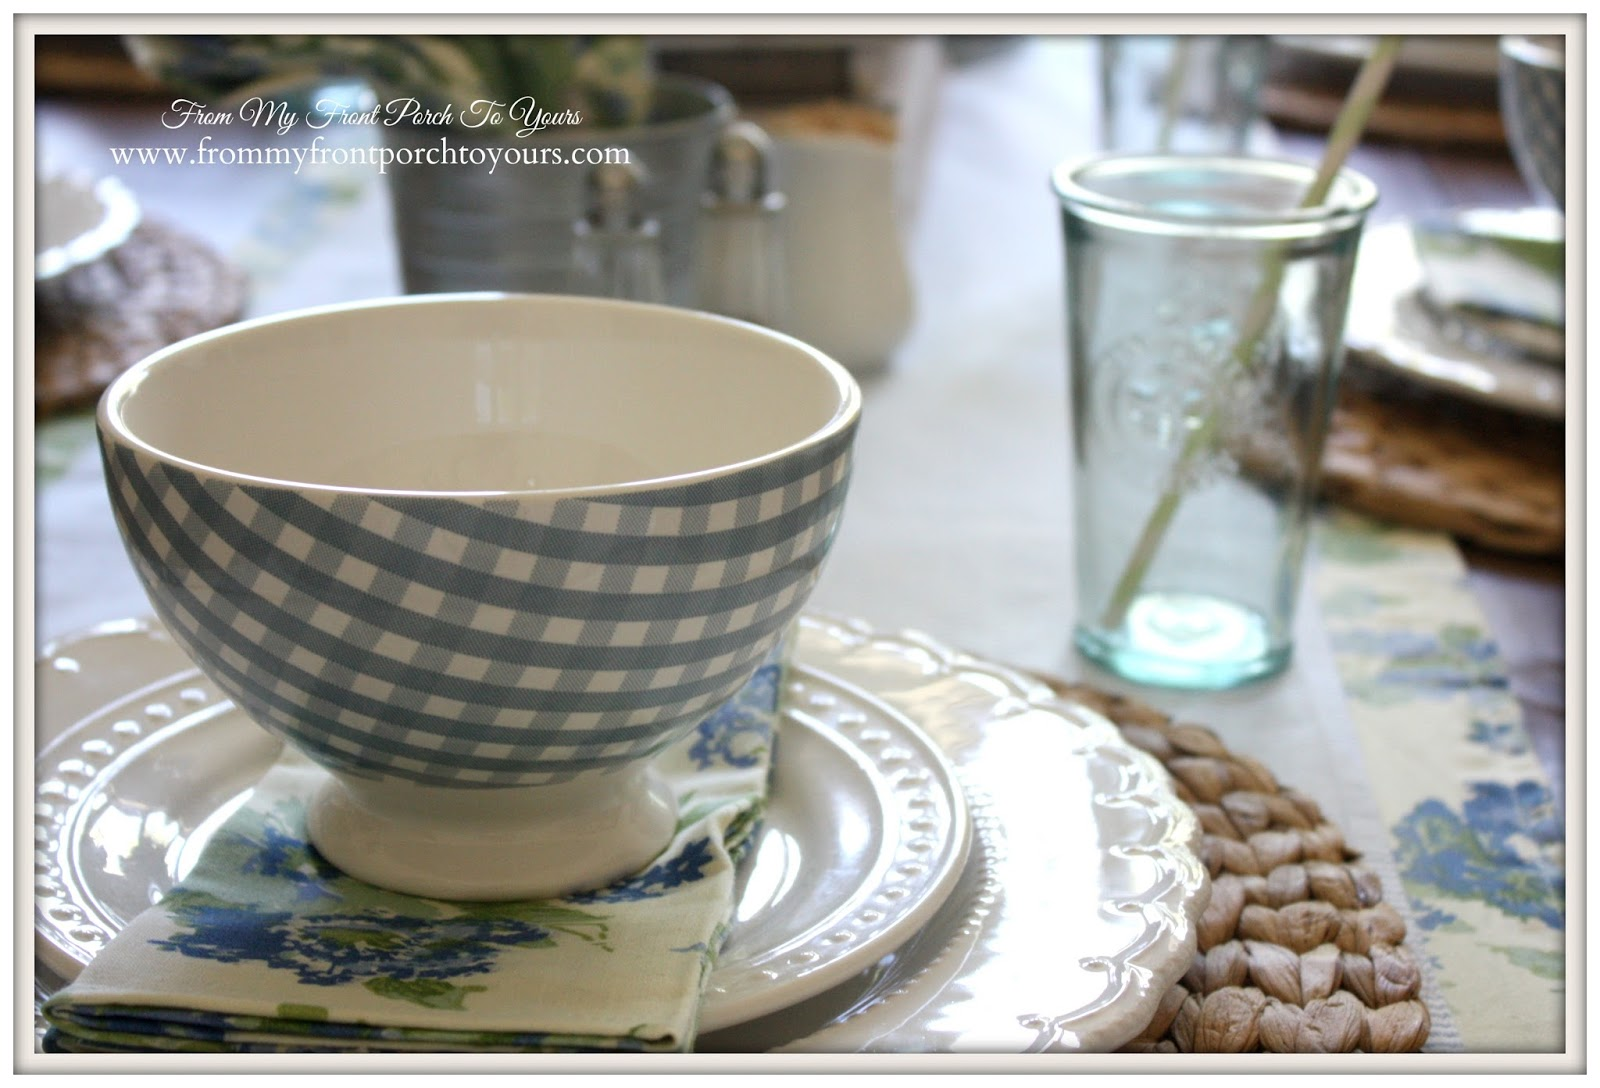 Table setting using blue gingham cereal bowls.